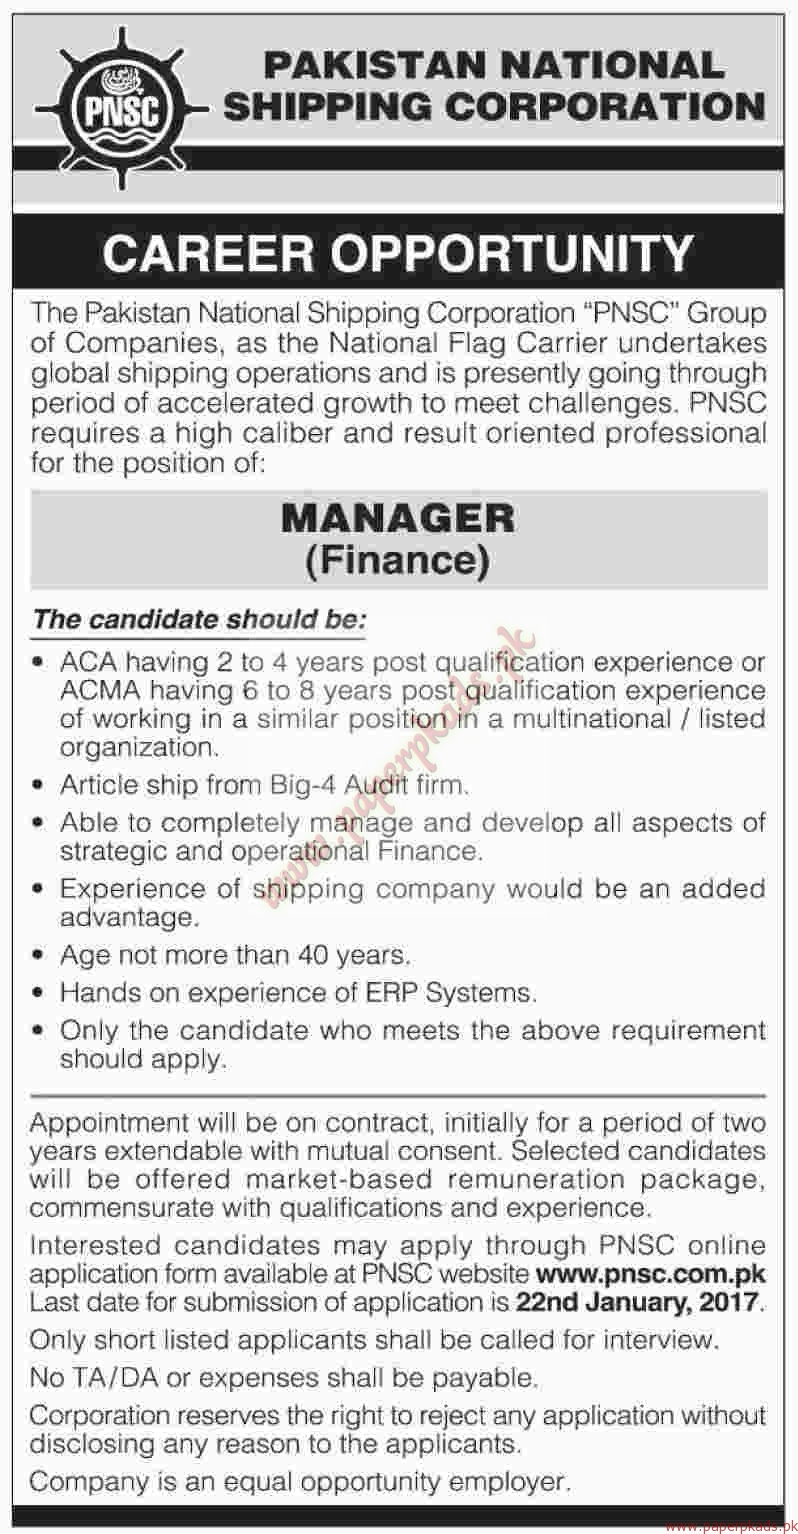 Pakistan National Shipping Corporation Jobs